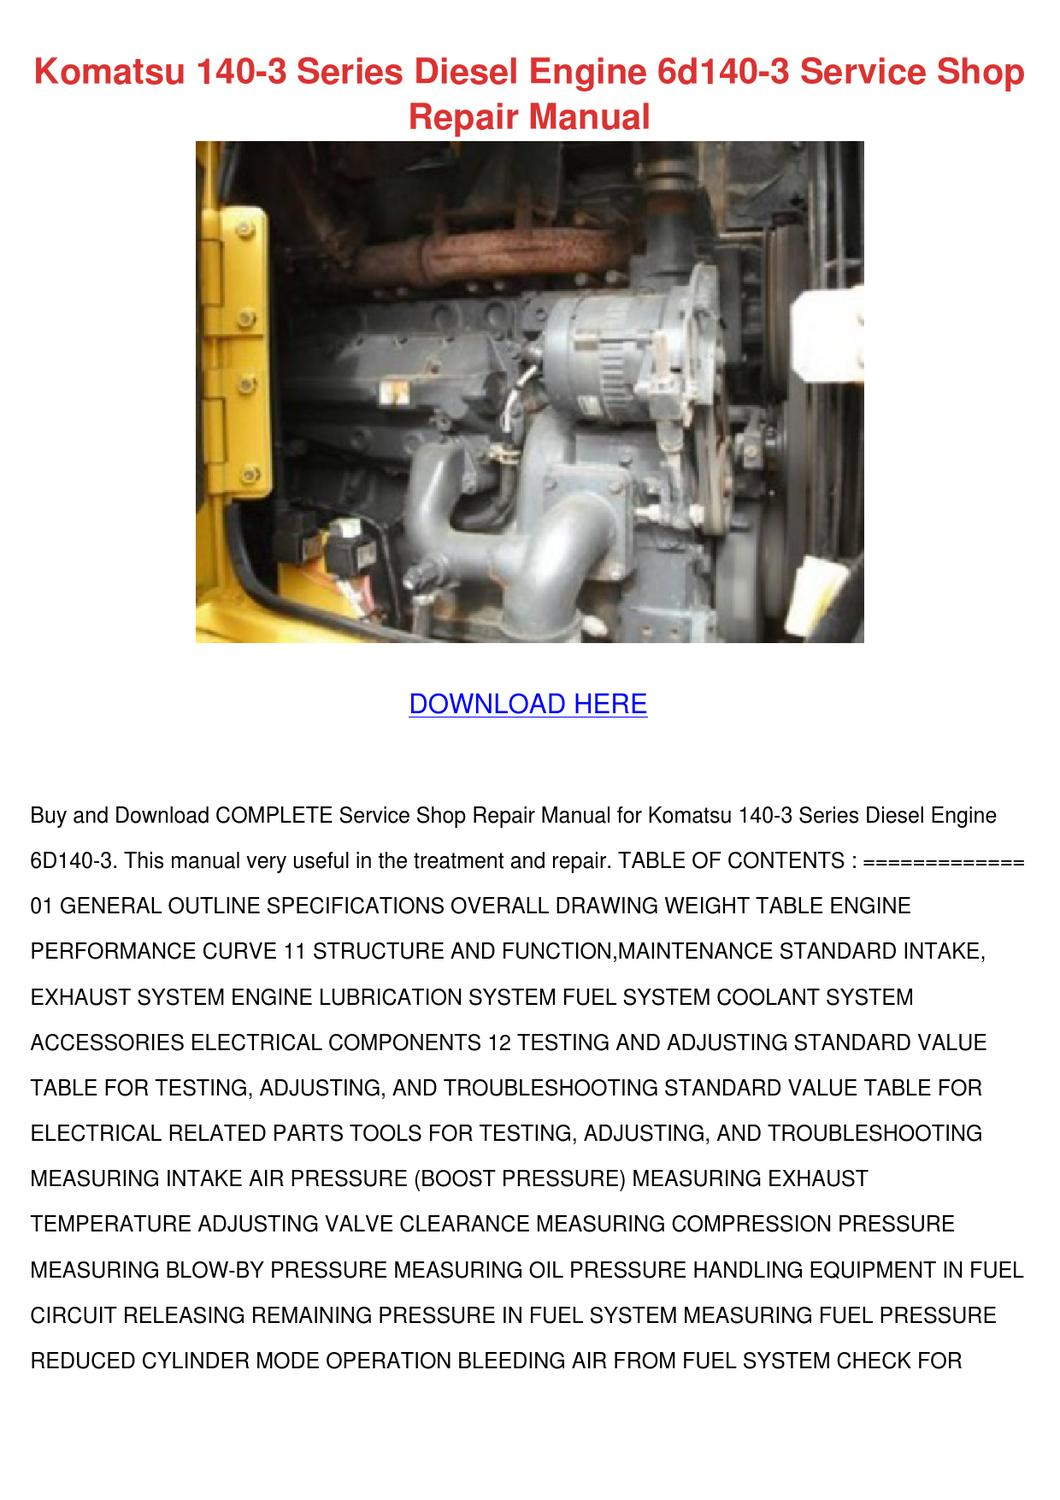 Komatsu 140 3 Series Diesel Engine 6d140 3 Se by Kari Mabey - issuu